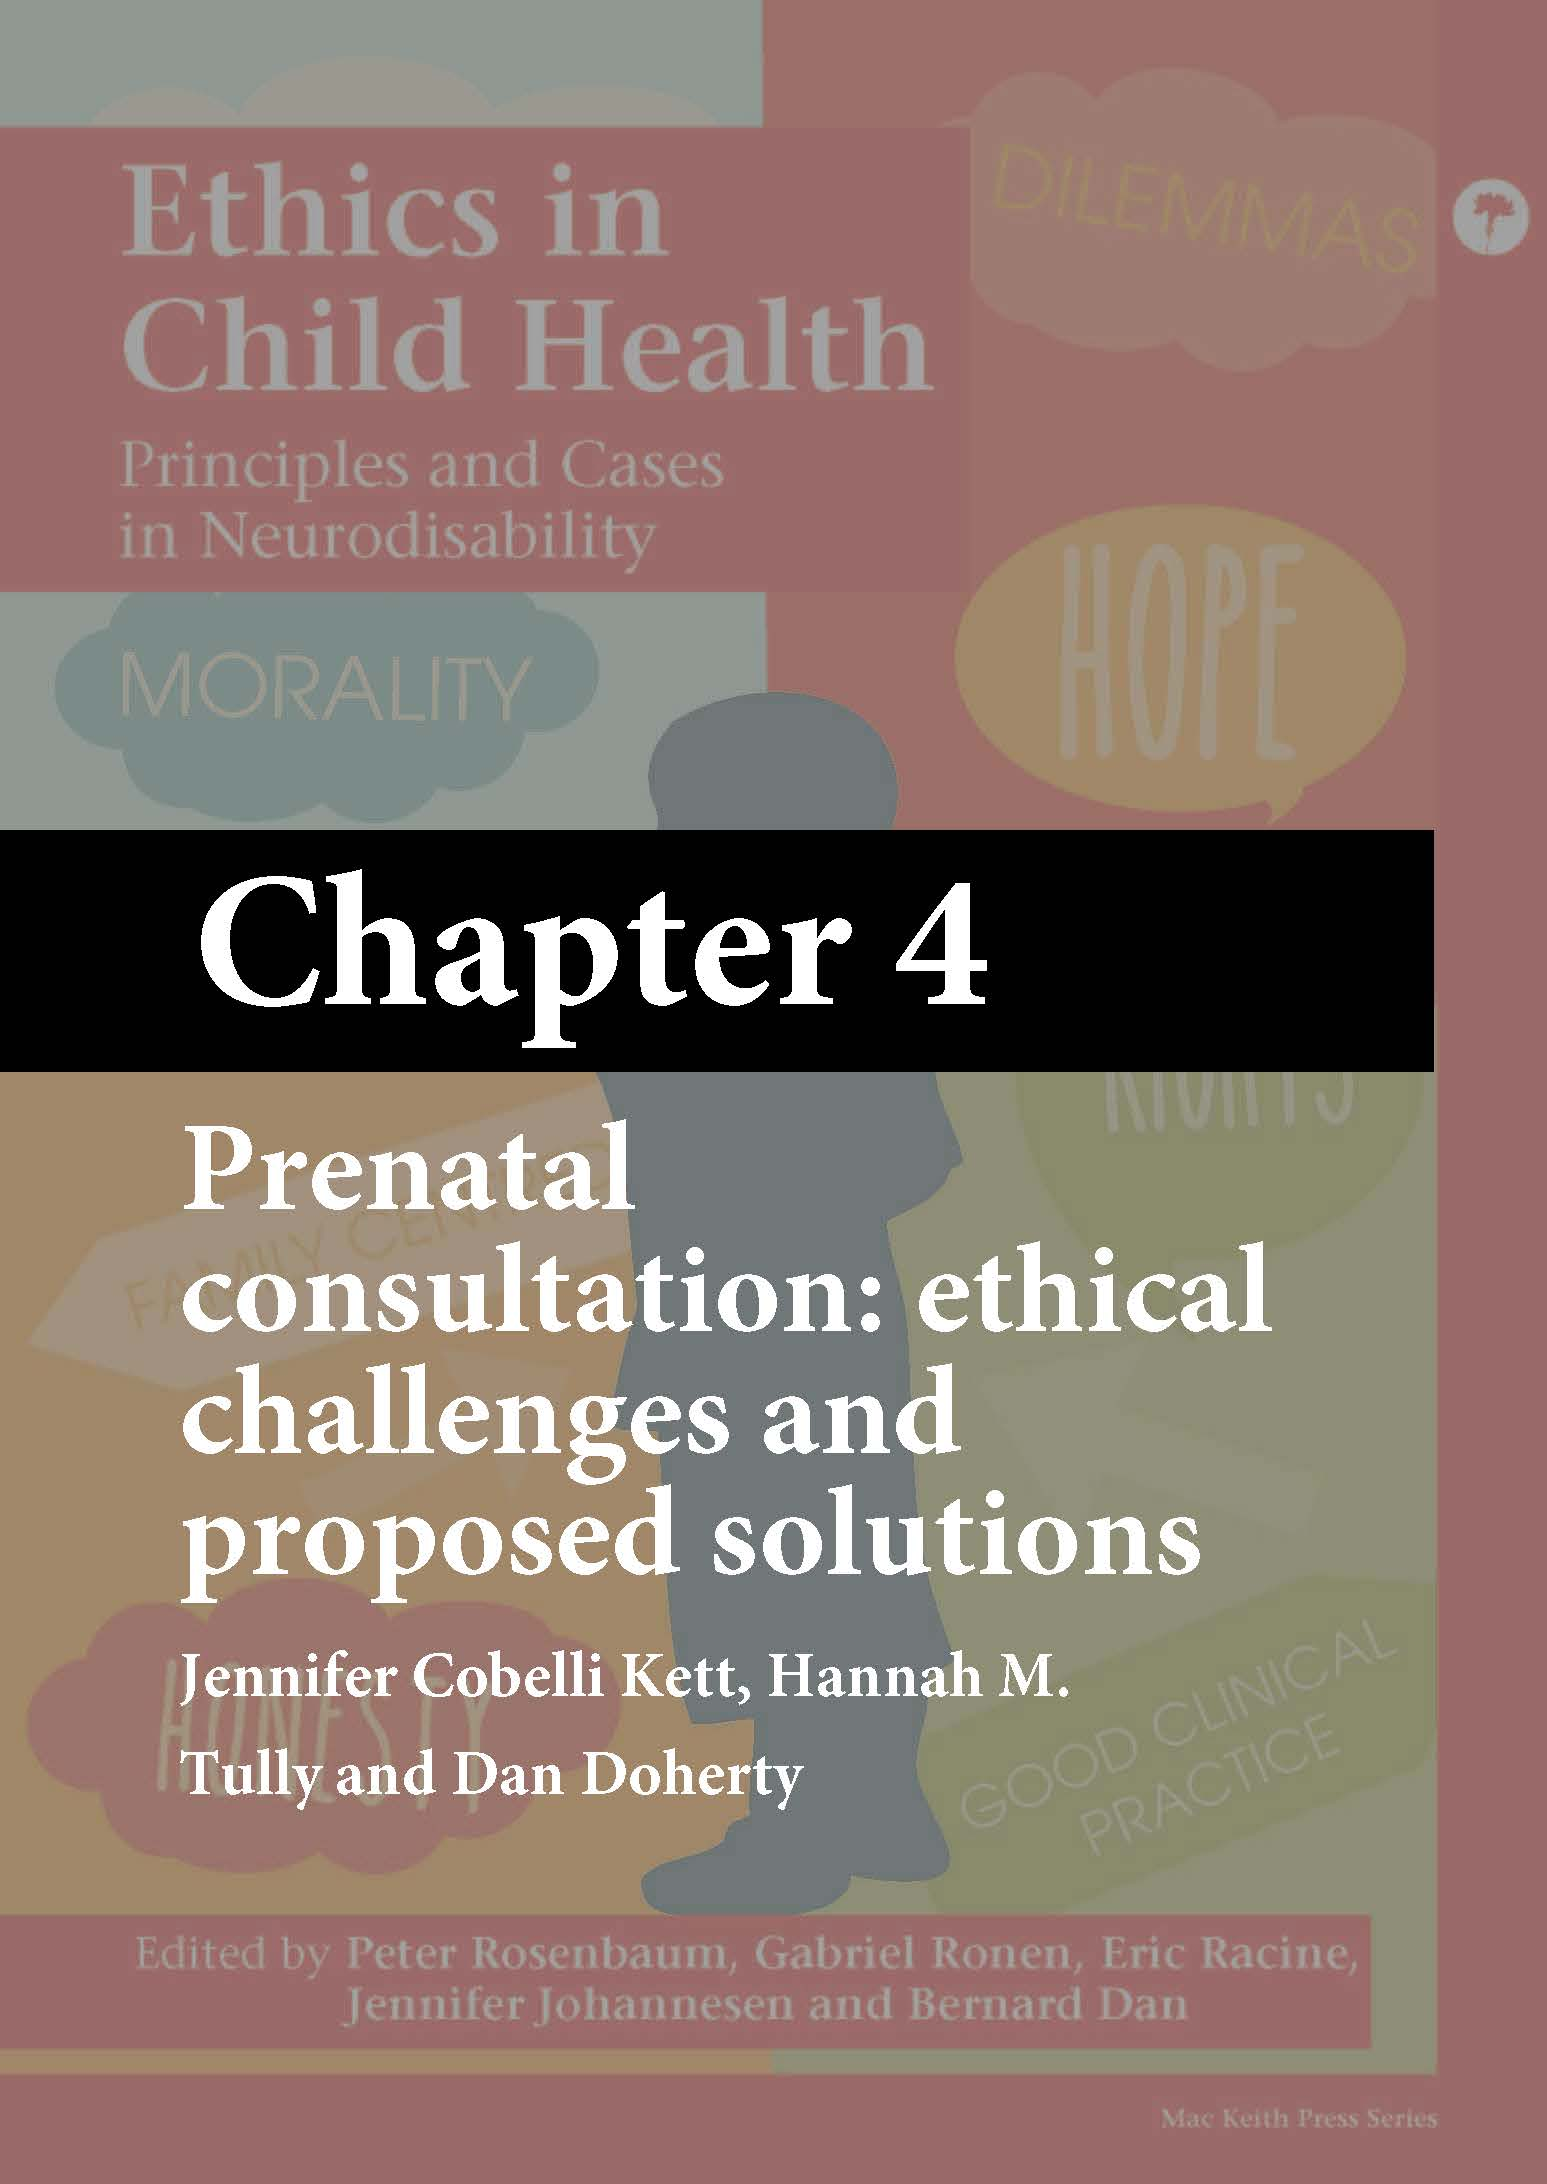 Mac Keith Press book, Ethics in Child Health, Rosenbaum, Chapter 4 cover